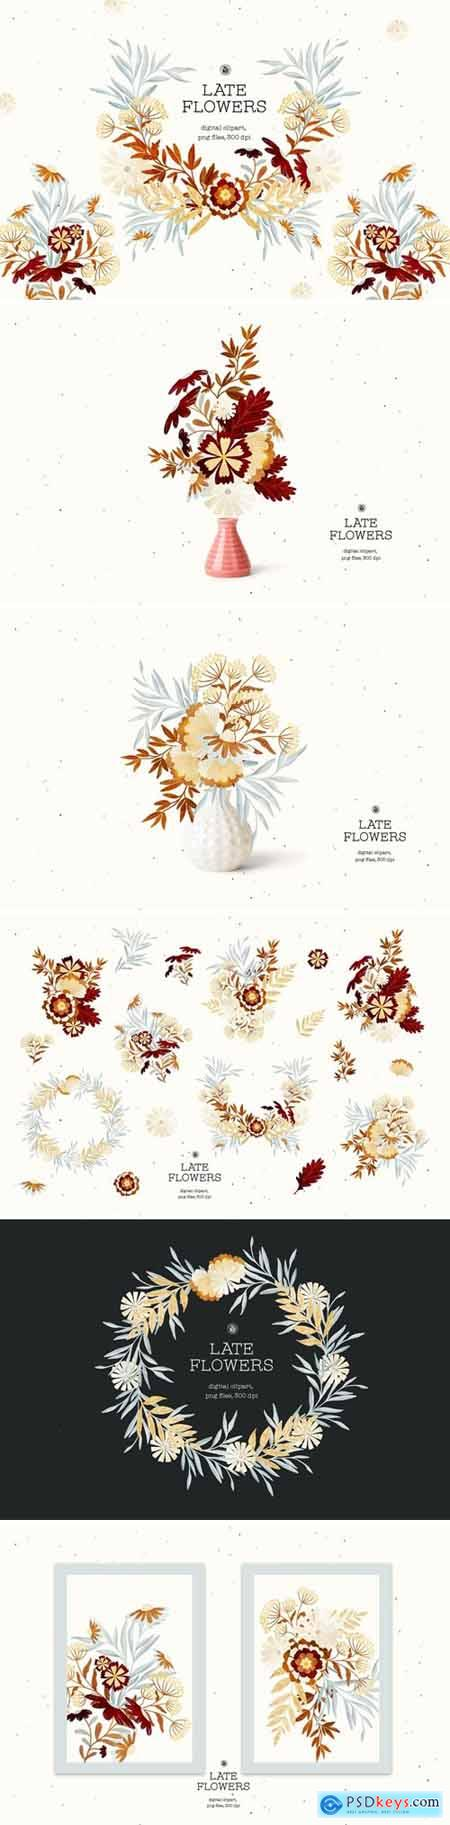 Late Flowers - digital clipart set